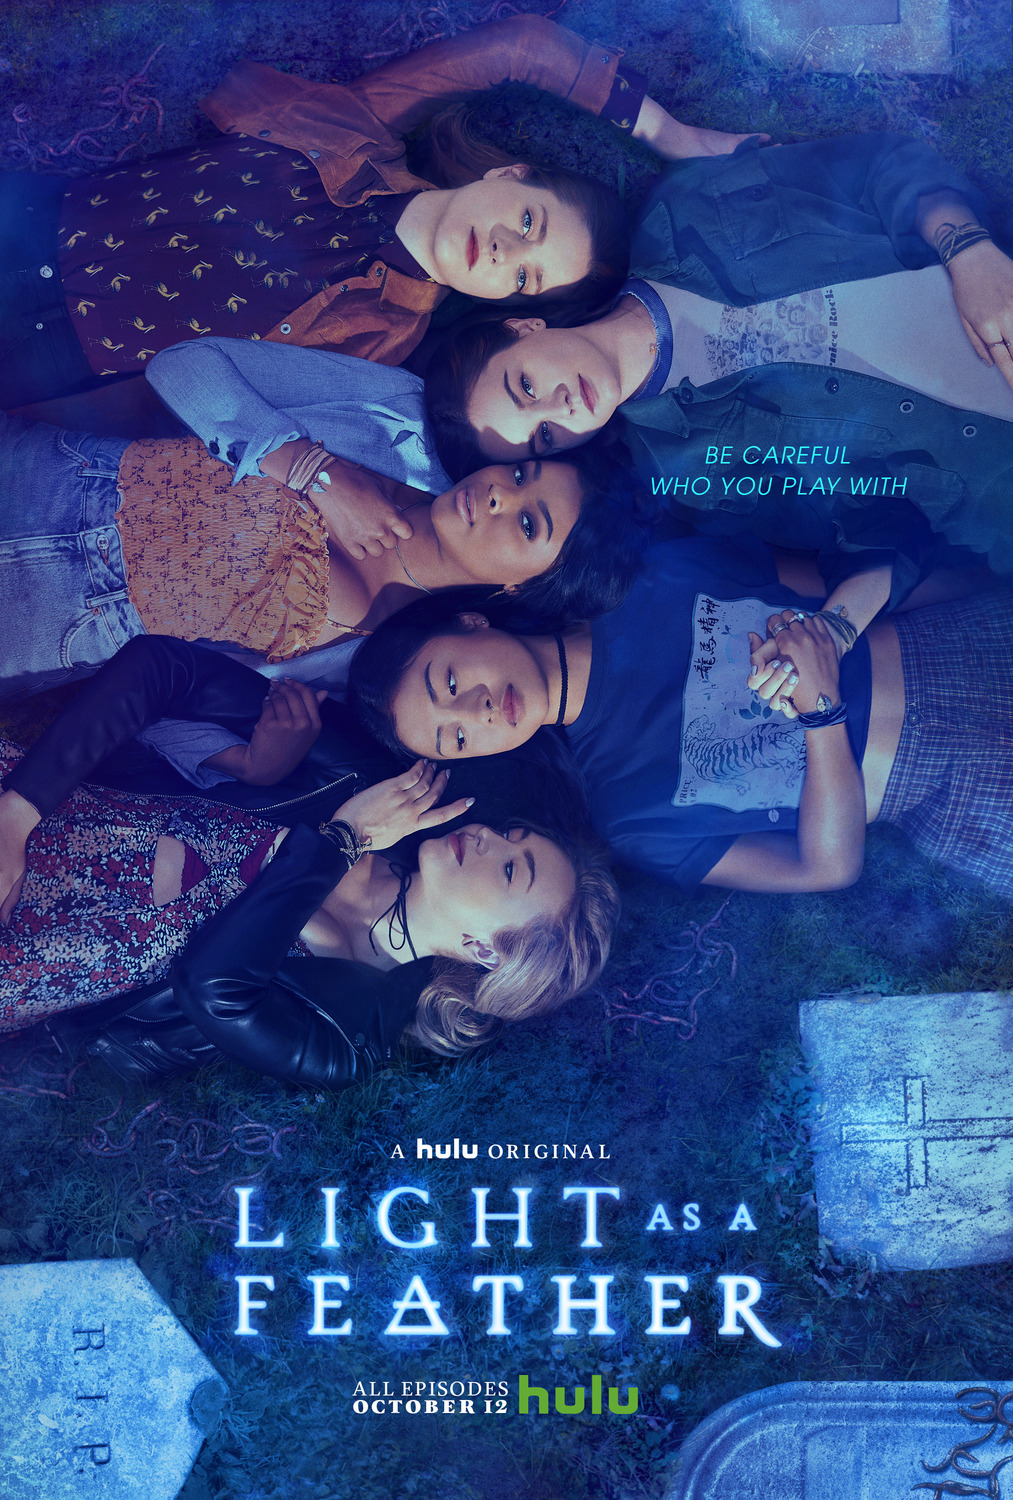 Light As A Feather Season 1 review: prepare to get witch slapped